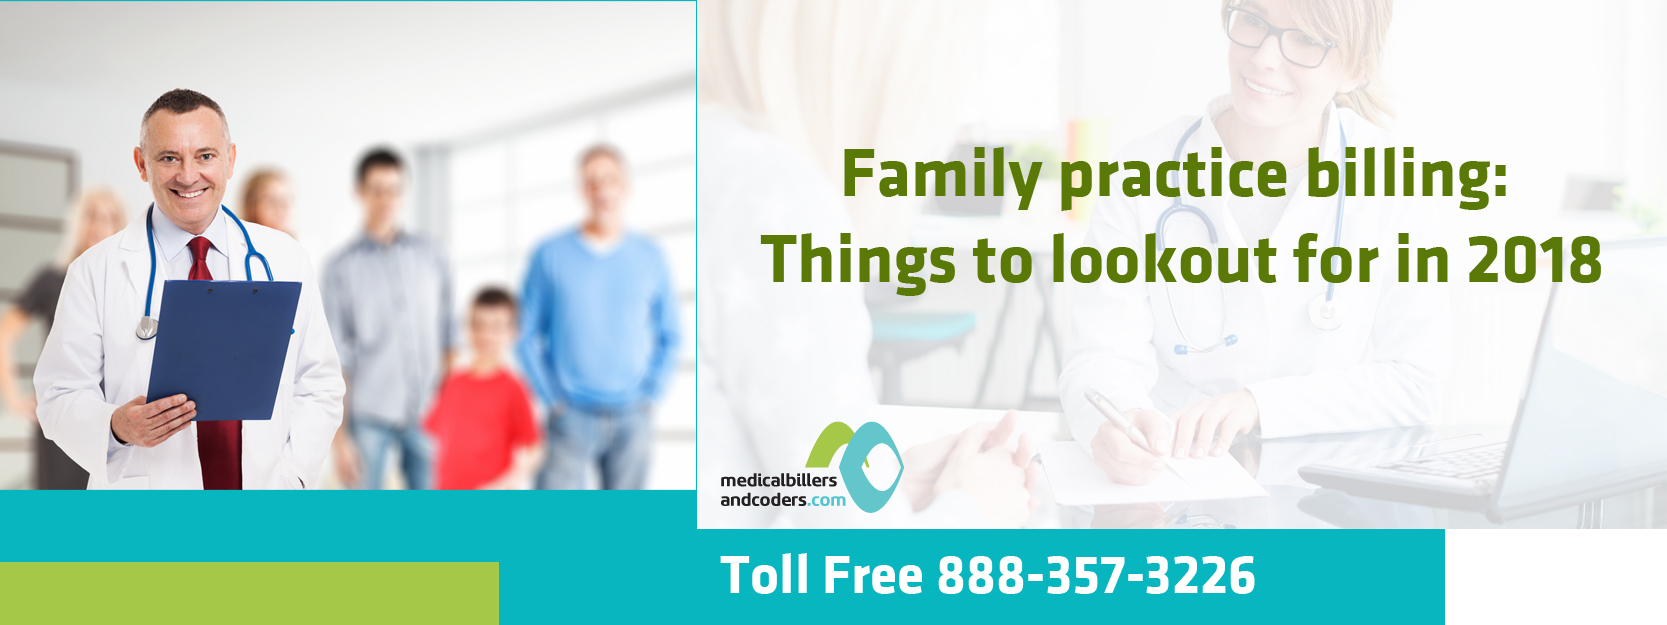 Blog-Family-practice-billing-Things-to-lookout-for-in-2018